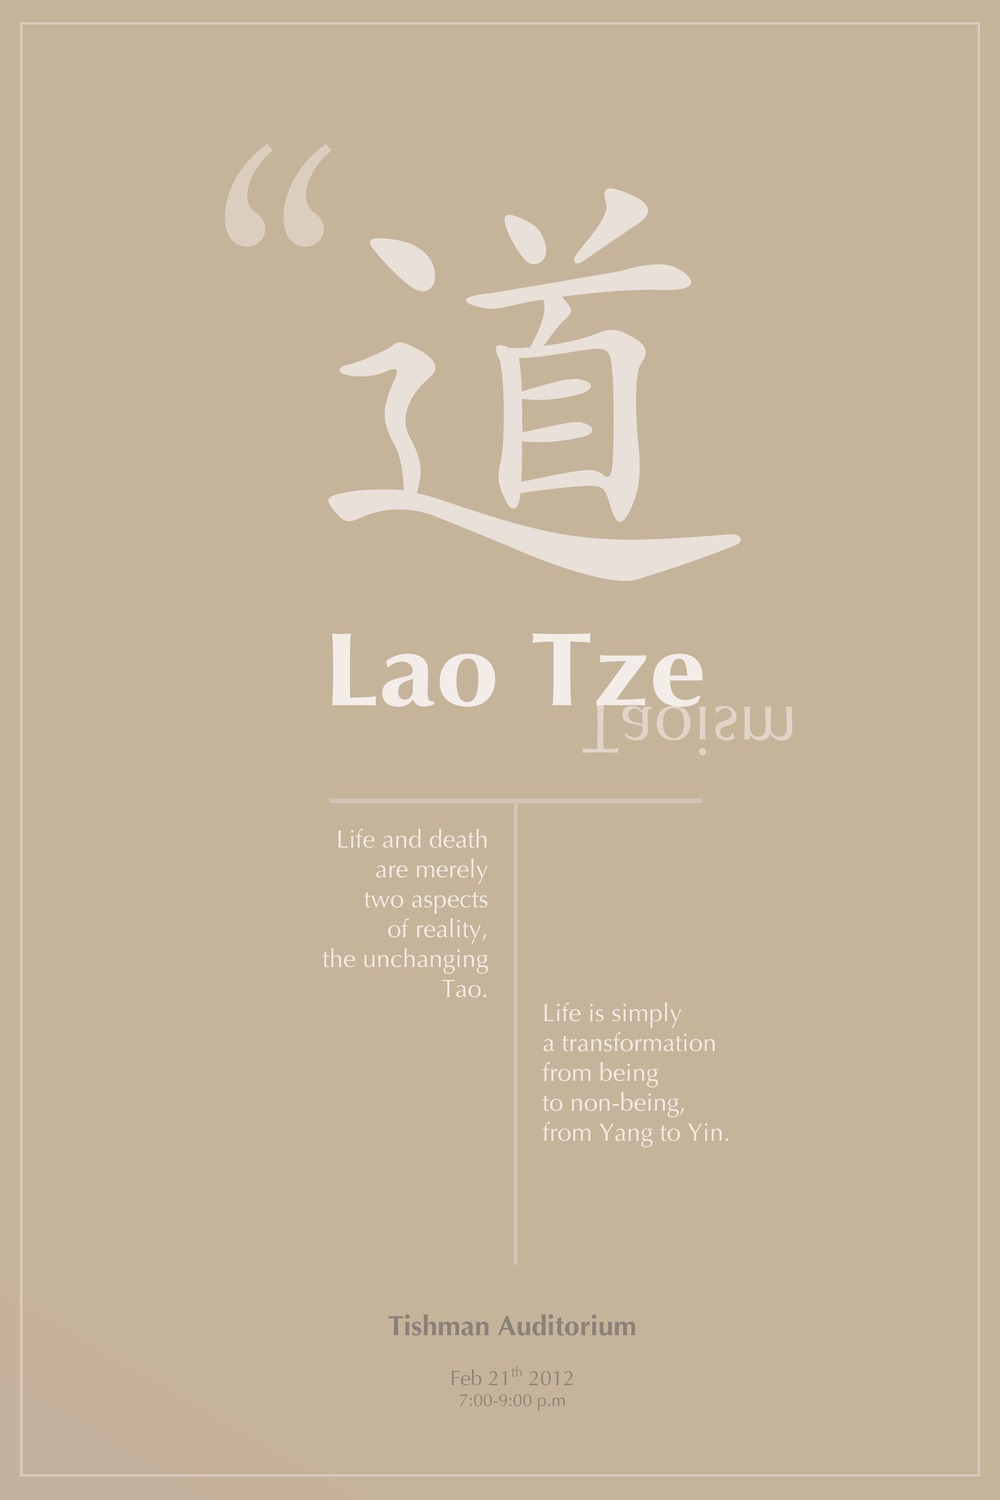 Zhu_Lecture Poster.jpg